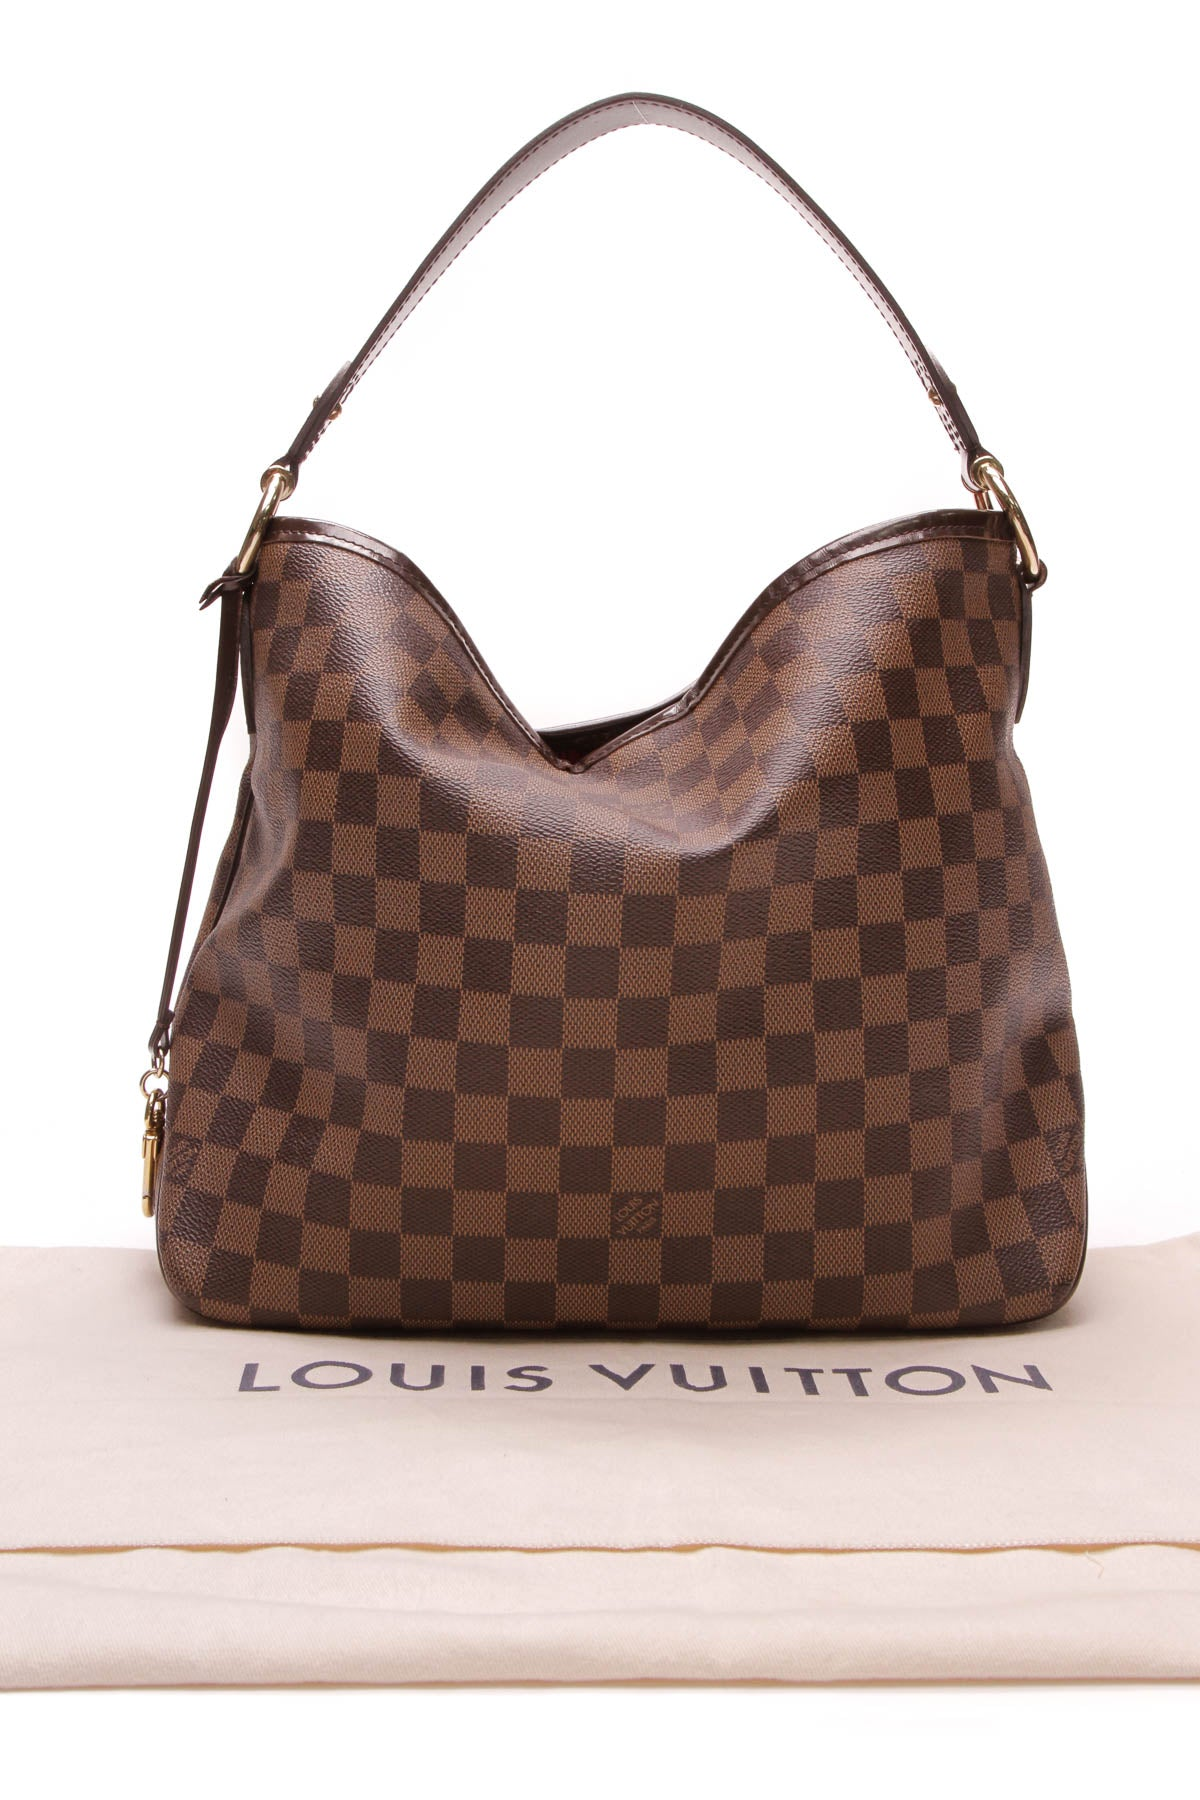 0d1d5a09b0eb7 Shop Louis Vuitton Bags